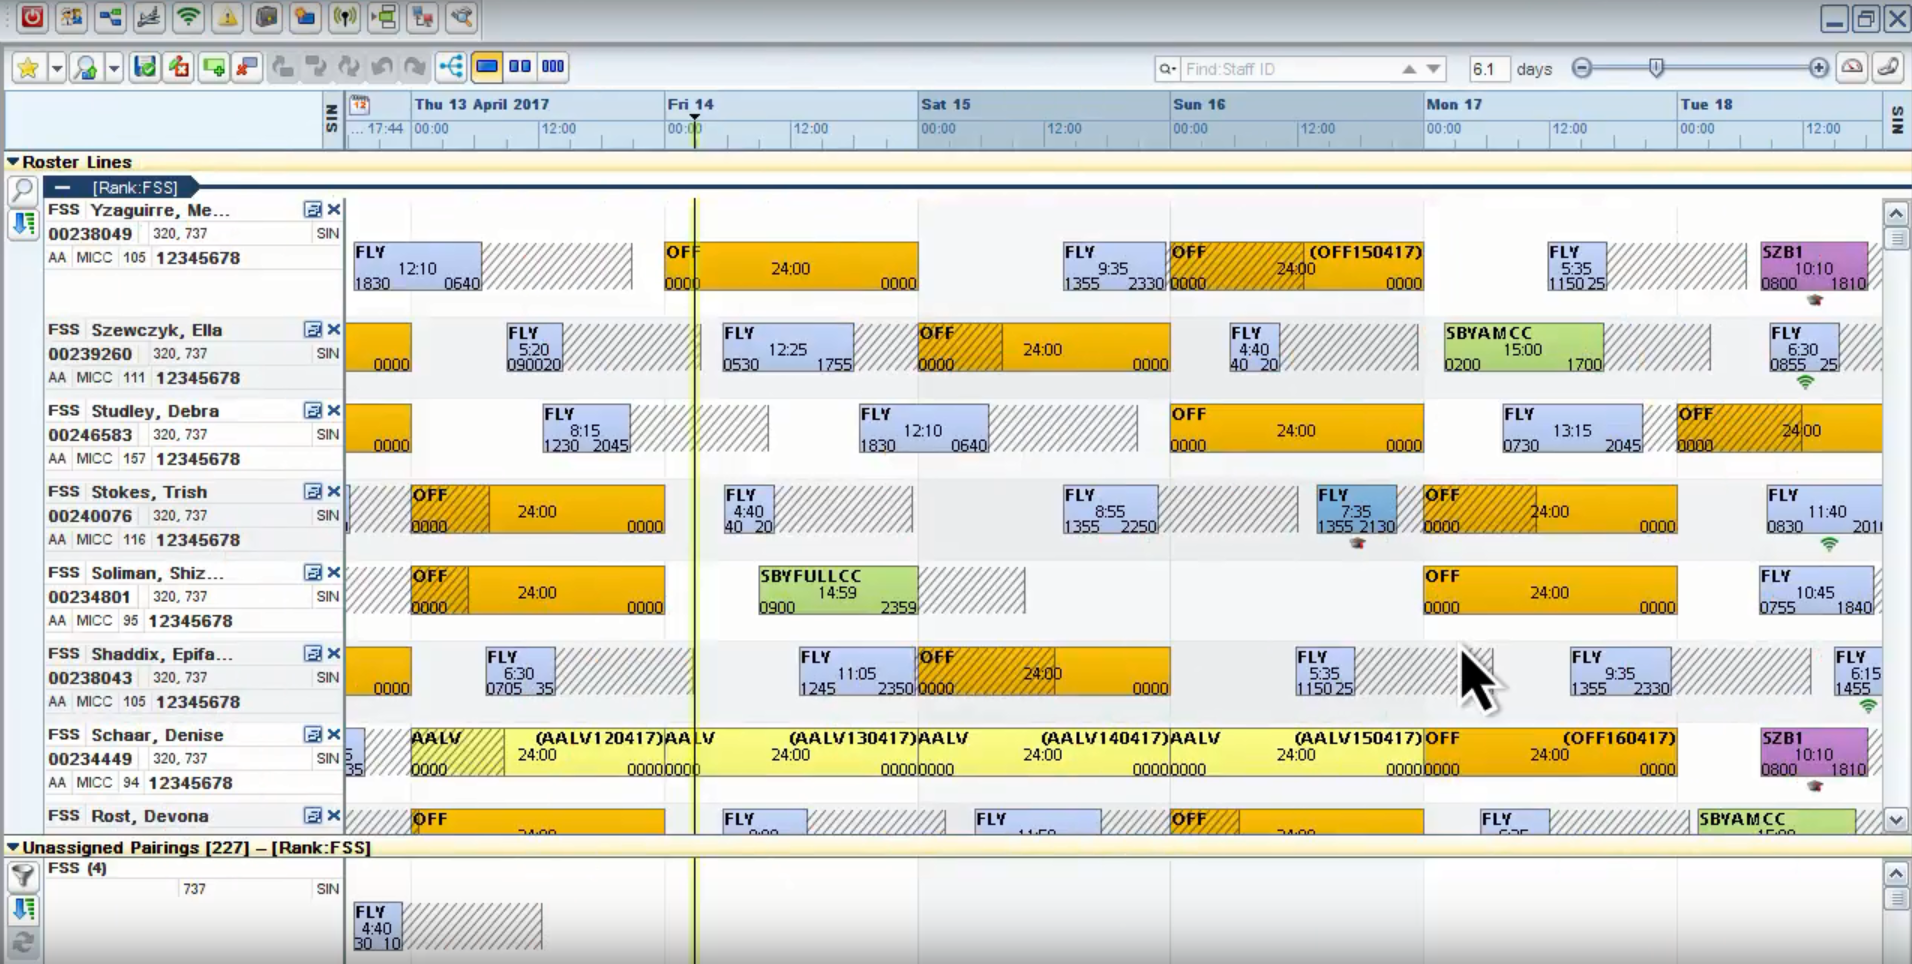 The unified crew pairing and rostering workspace in AirCenter Crew Manager